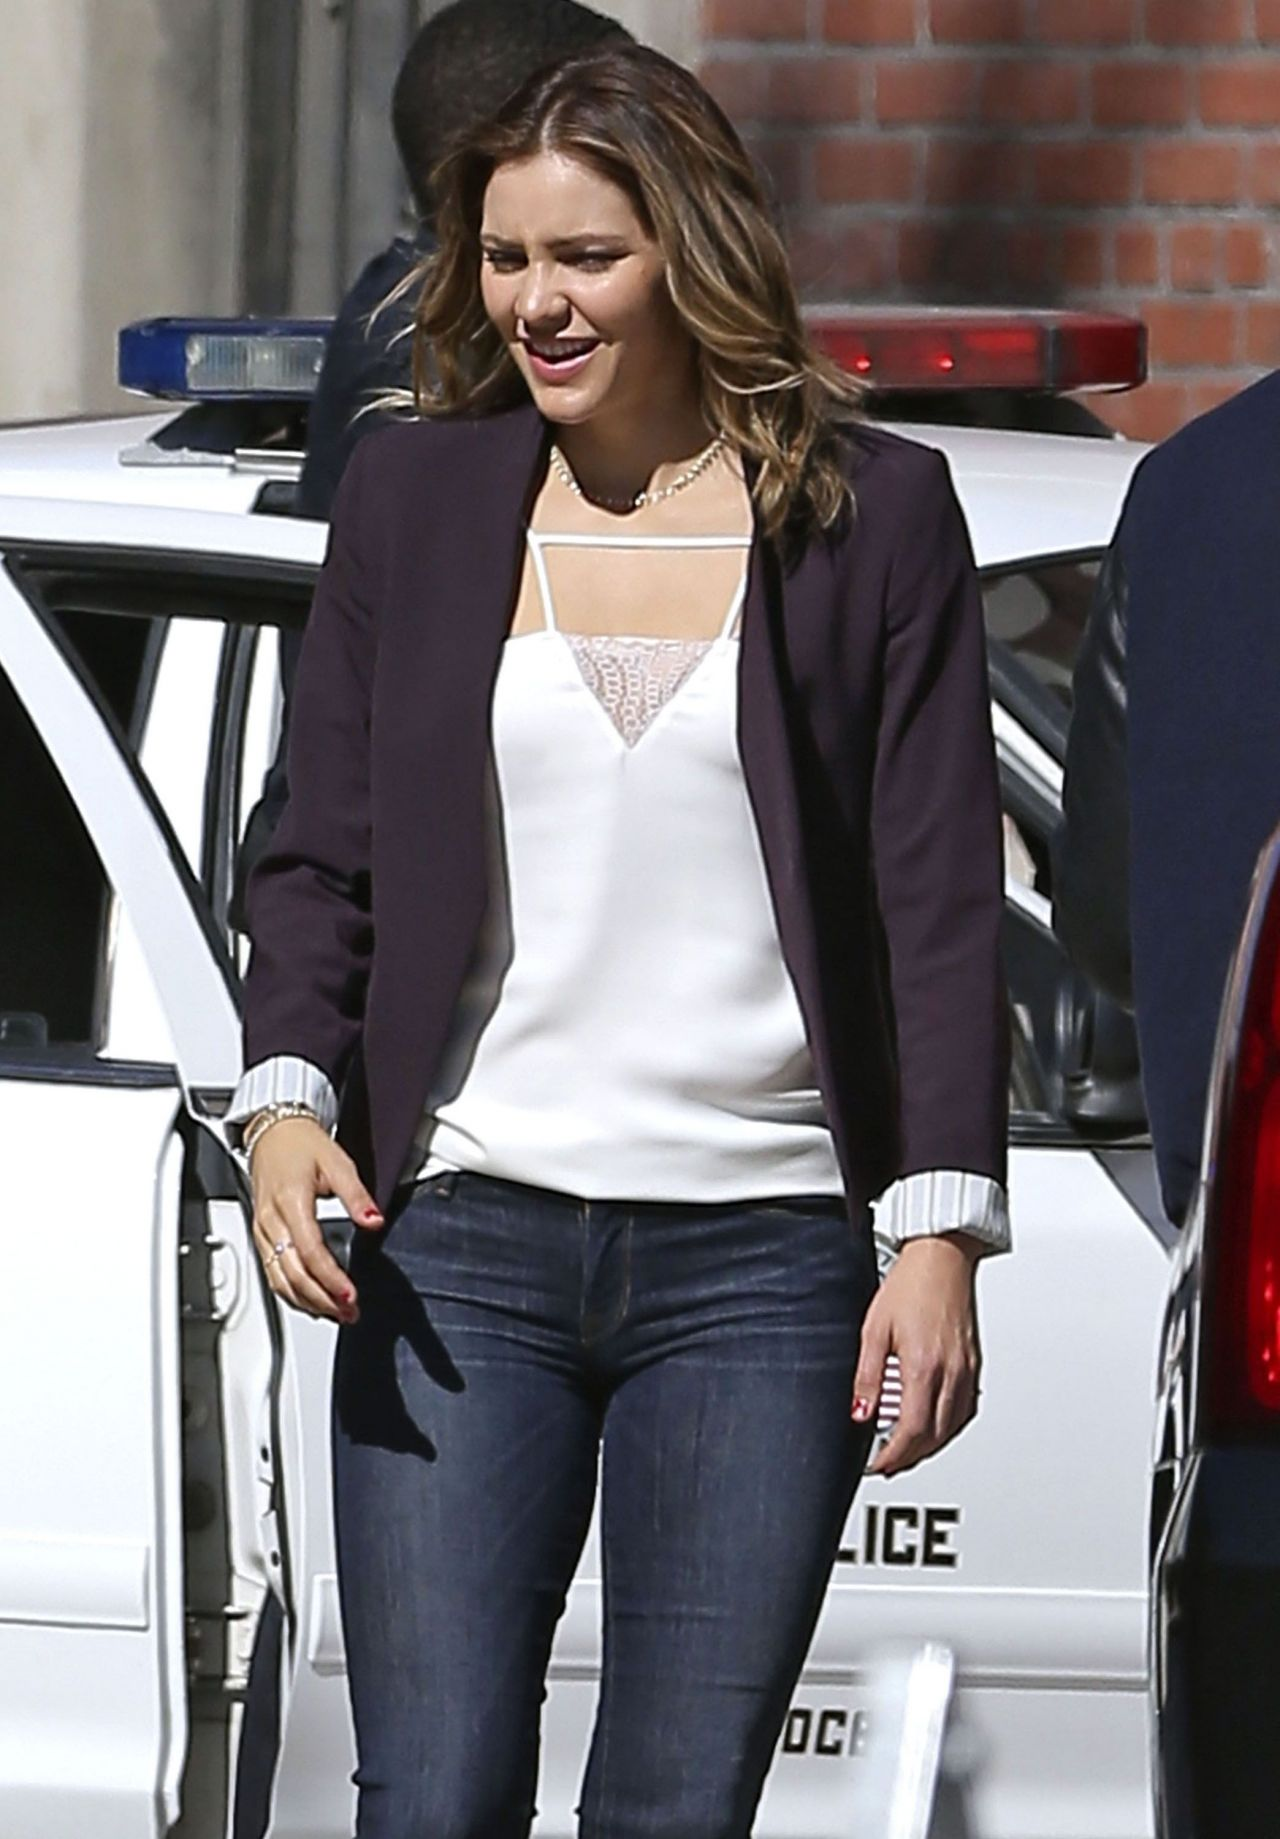 Katharine Mcphee Booty In Jeans - Scorpion Set Photos -7600